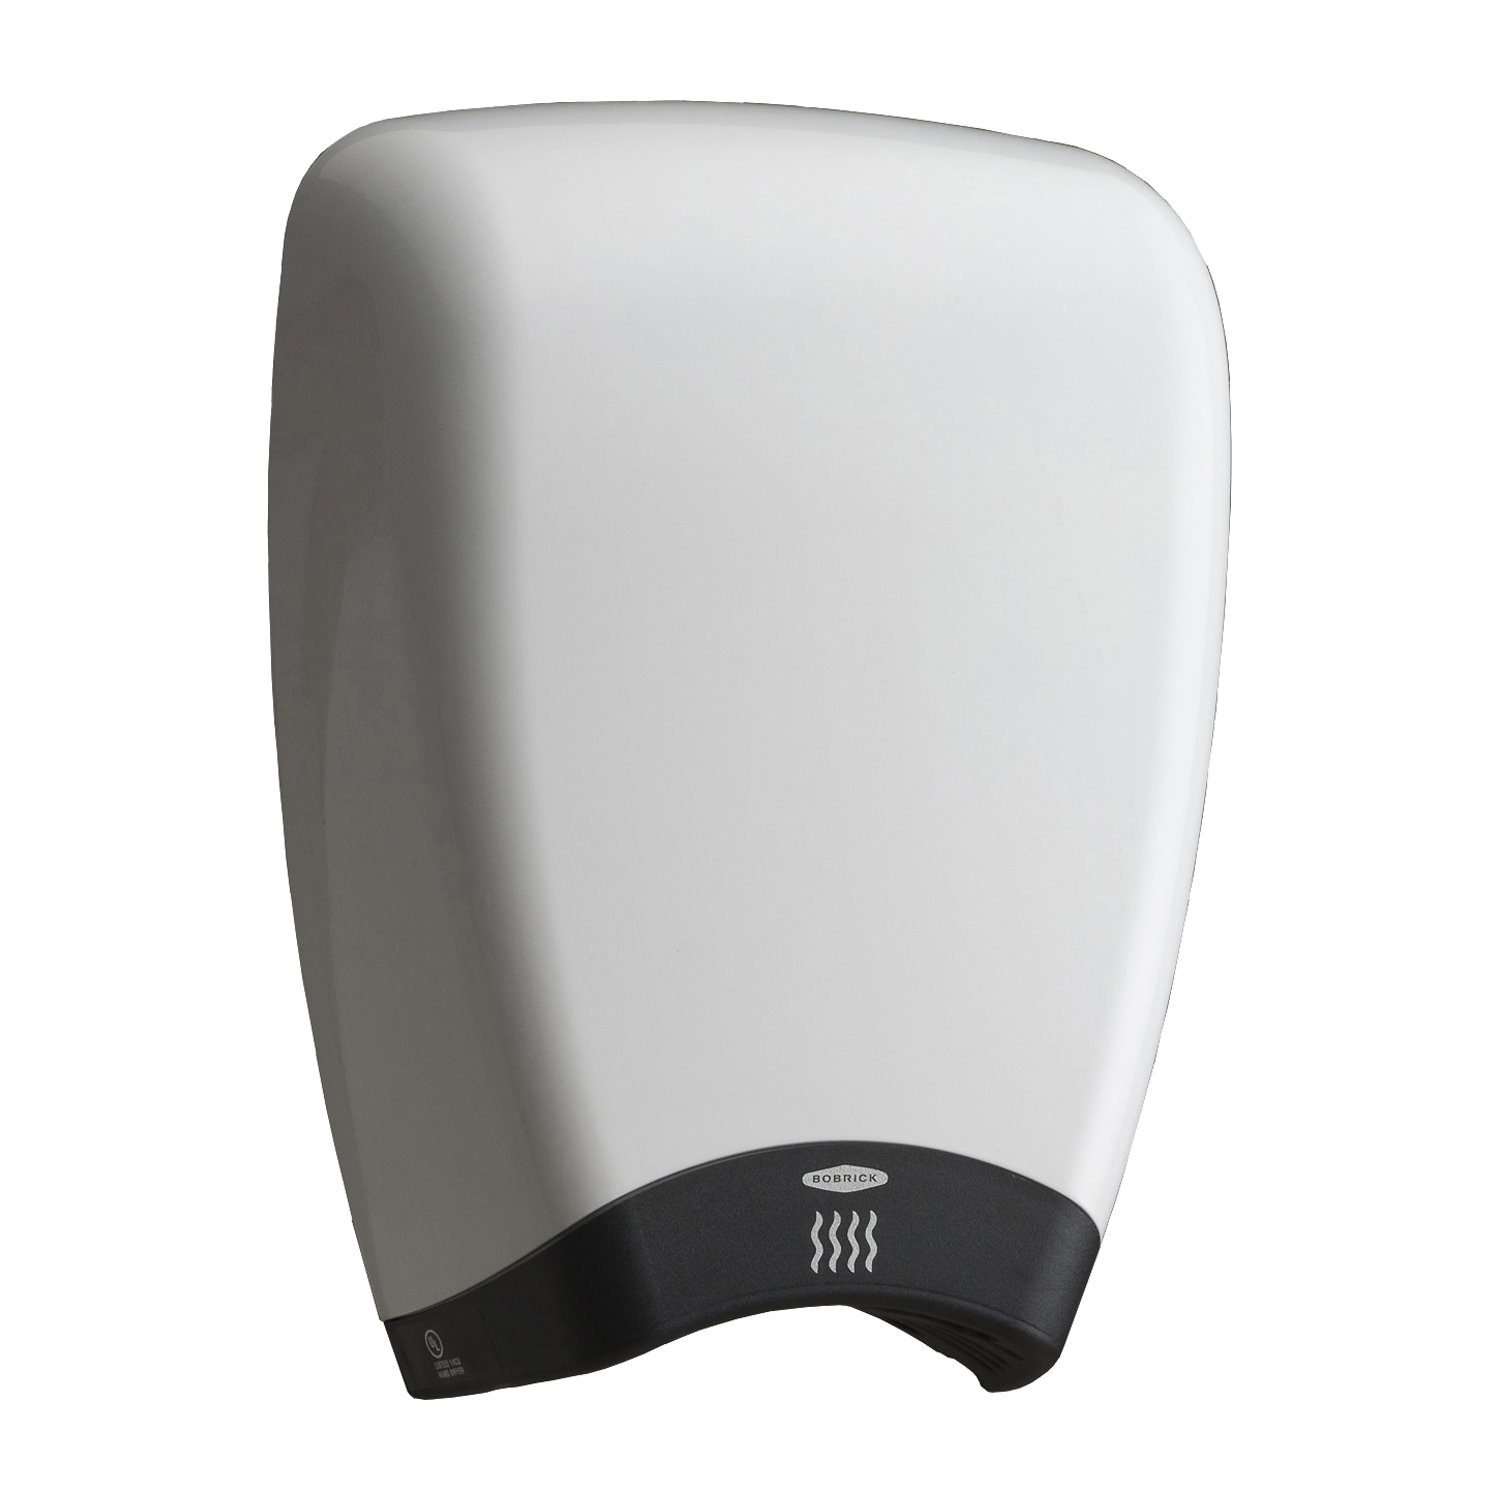 Miraculous Terradry Wall Mounted Hand Dryer With Epoxy White Colour Spiritservingveterans Wood Chair Design Ideas Spiritservingveteransorg